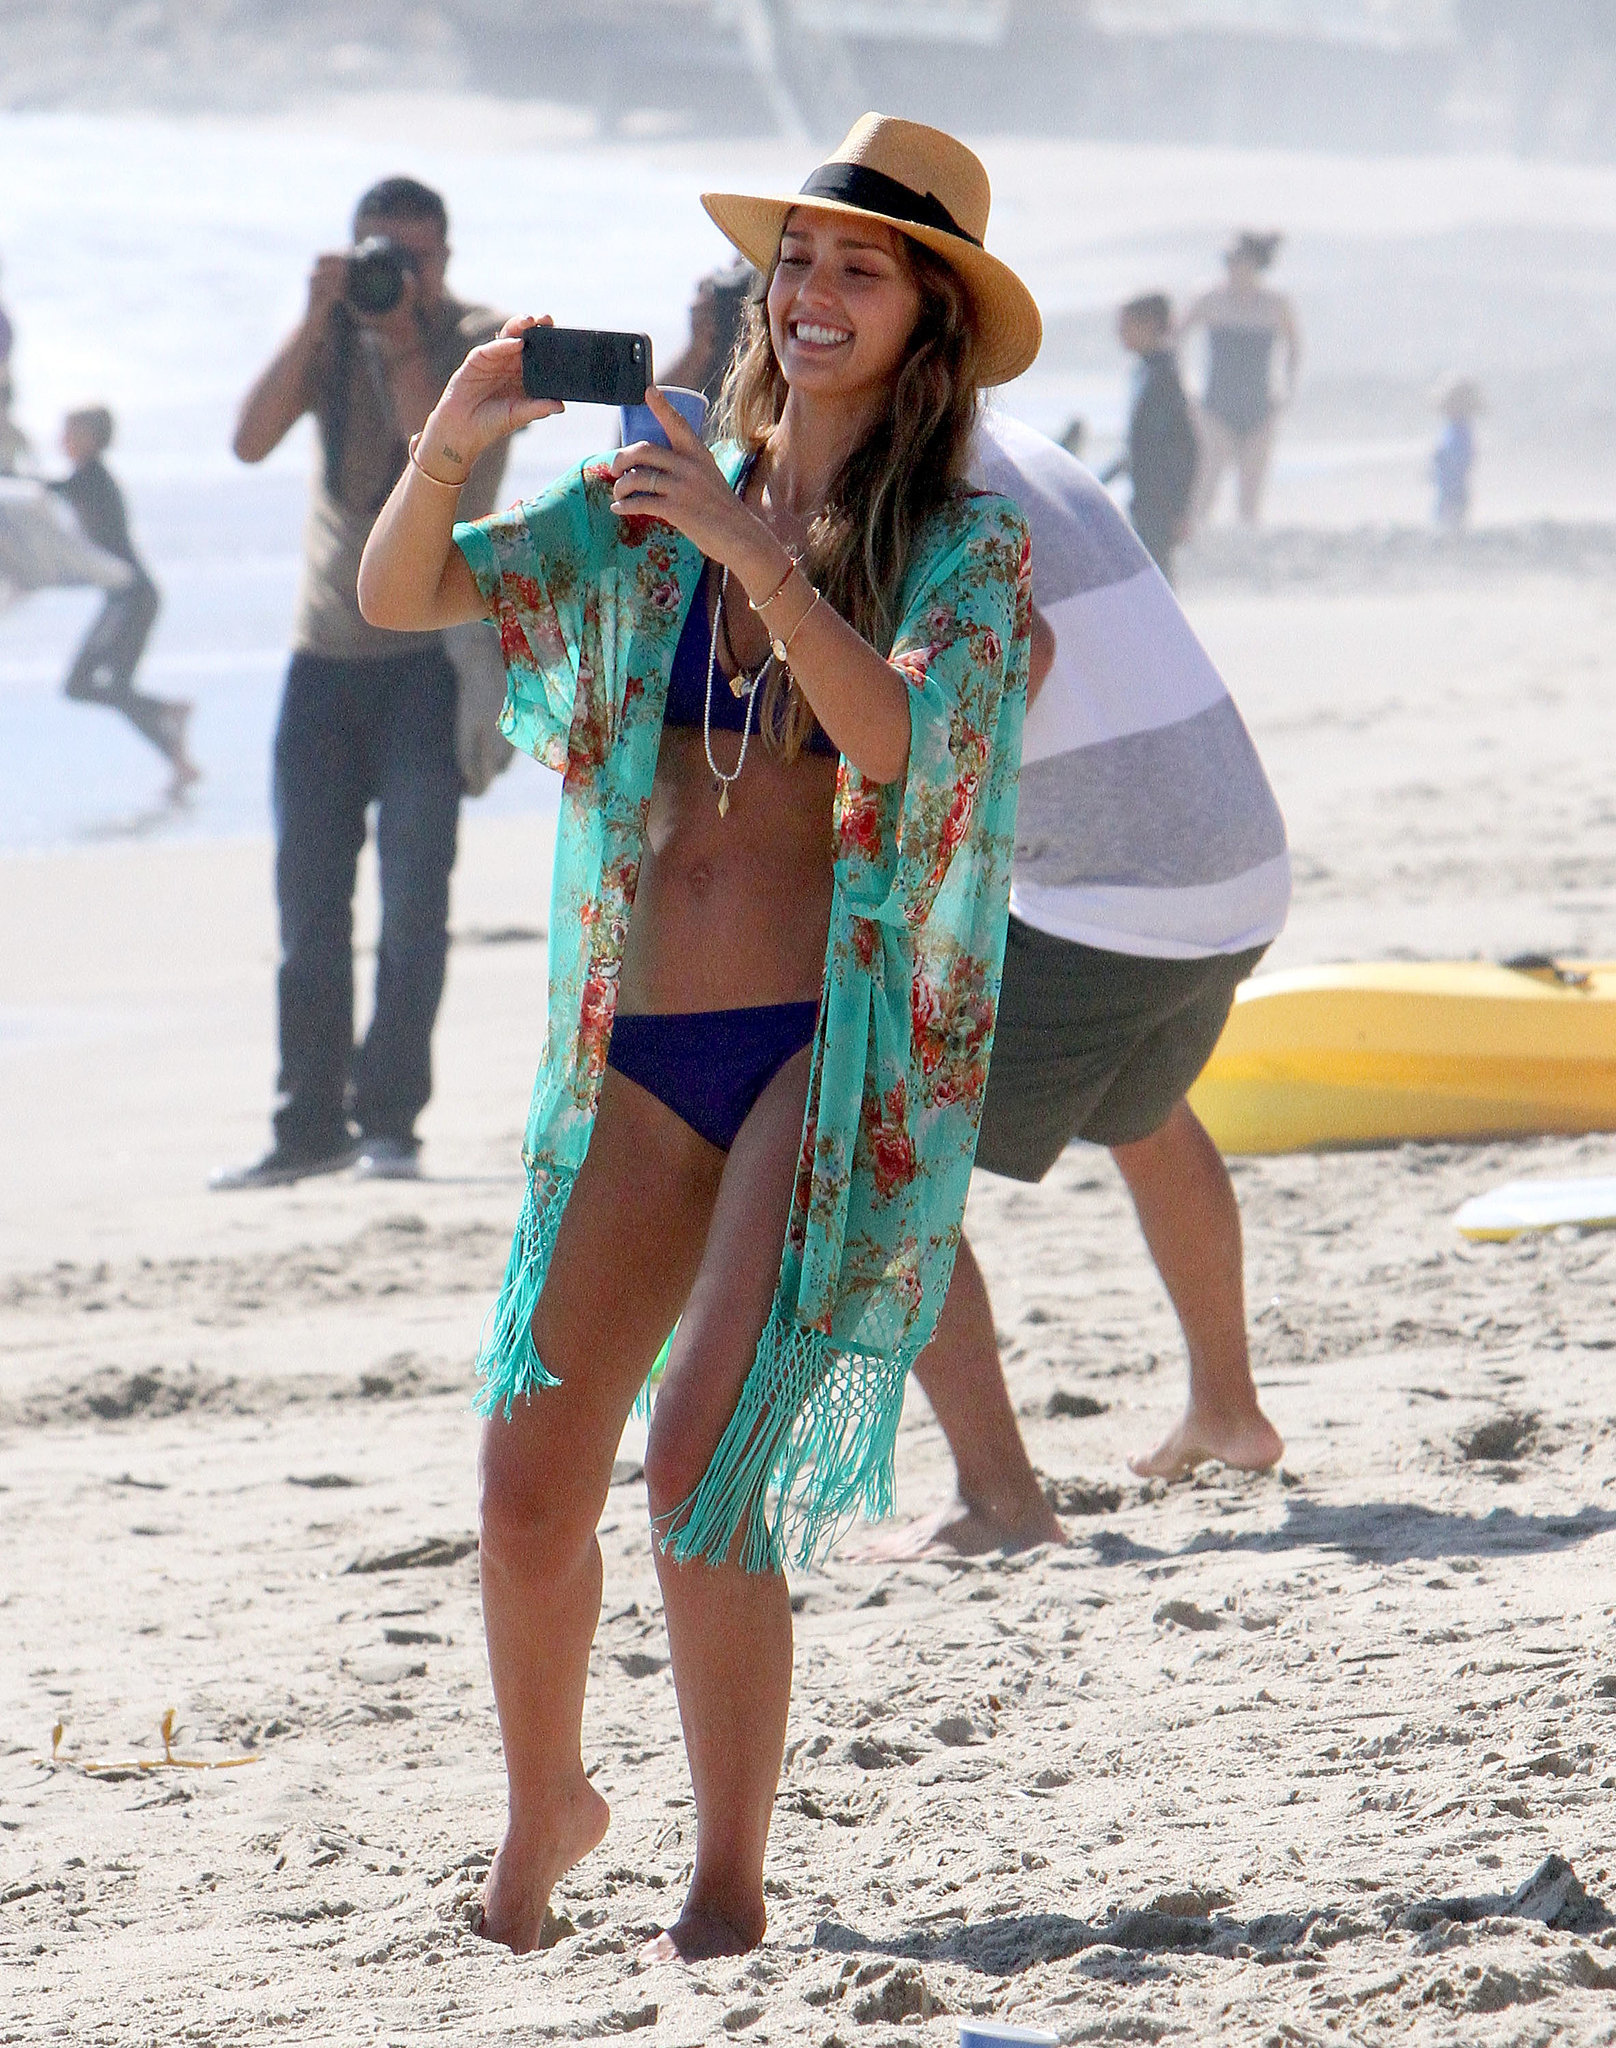 Jessica snapped a pic of her family over Labor Day weekend in September 2013 in Malibu, CA.